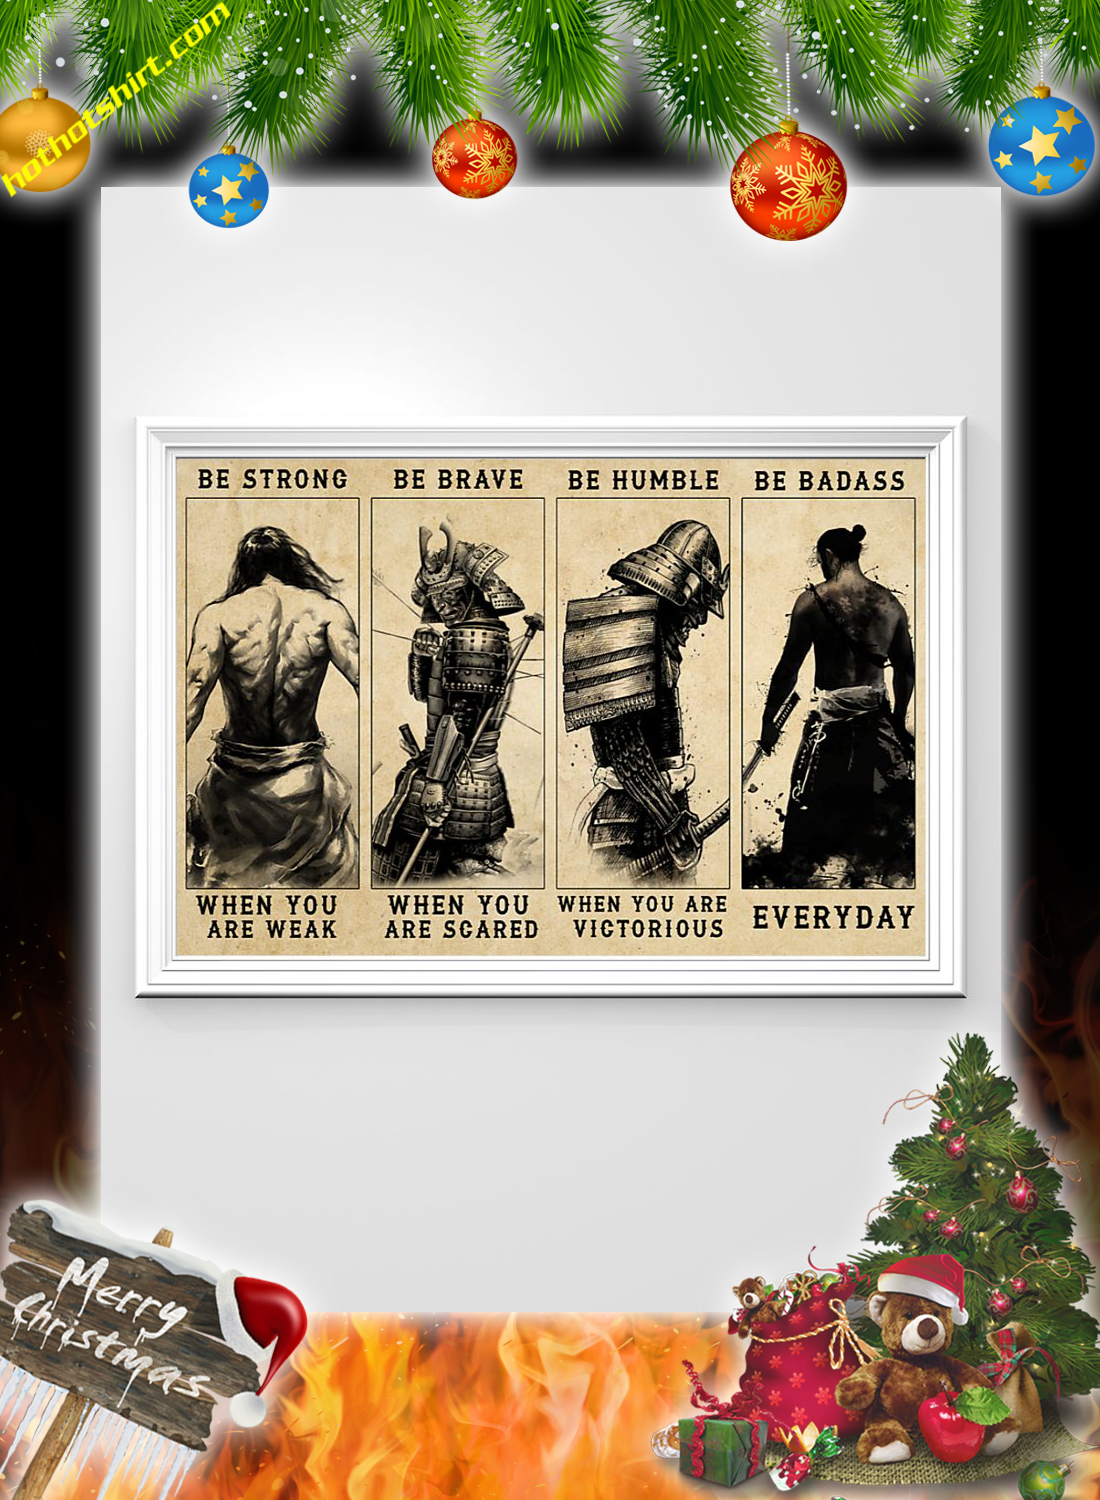 Samurai be strong be brave be humble be badass poster 2